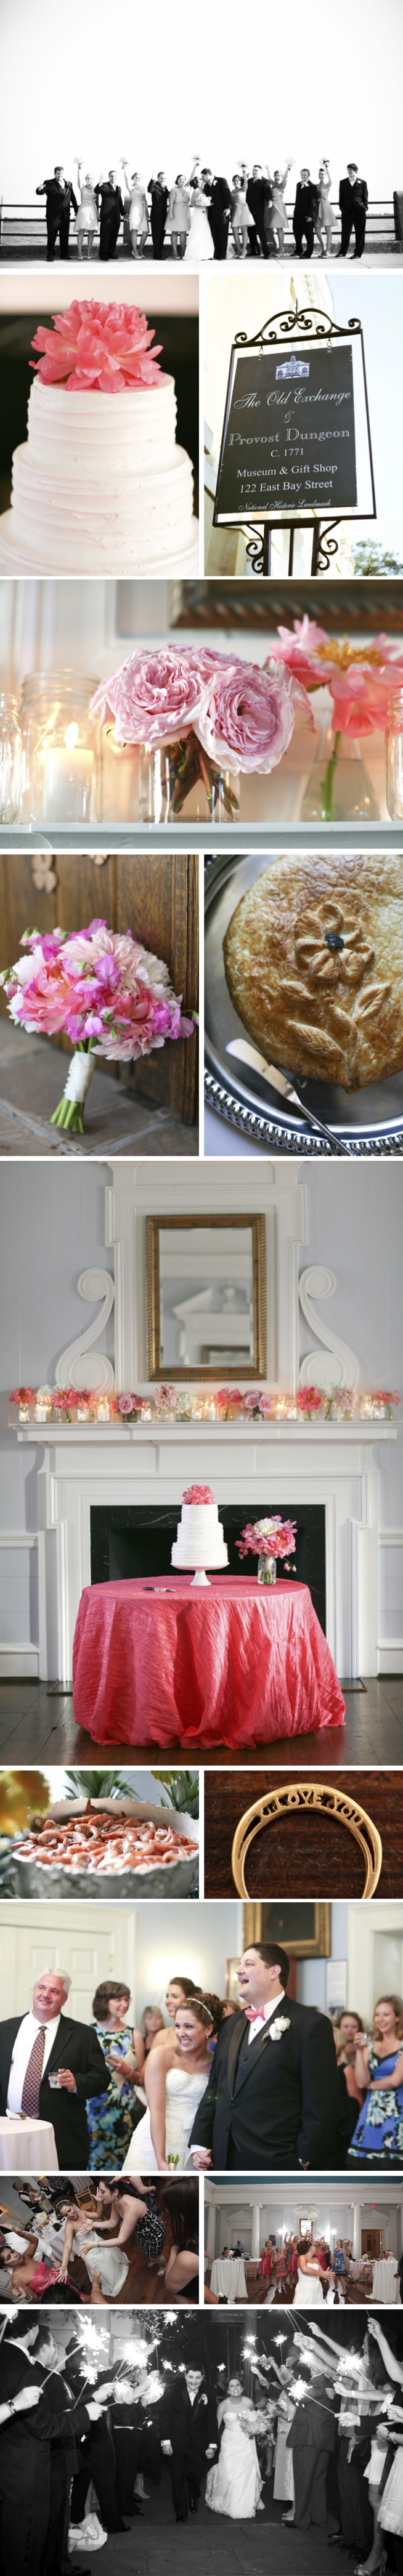 wedding ideas | southern weddings